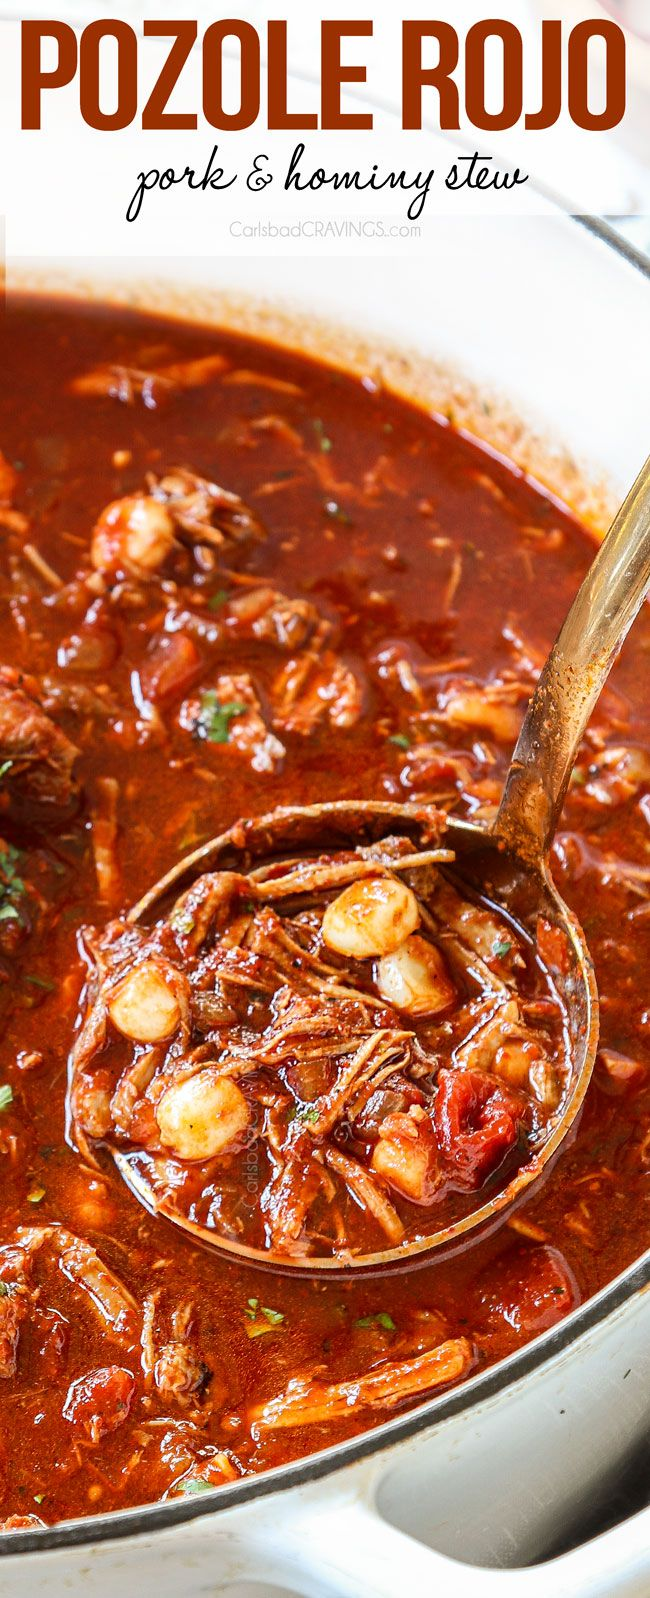 Pozole Rojo Is A Rich Bold Comforting Hearty Mexican Stew Made With Pork And Hominy That S Pract In 2020 Instant Pot Dinner Recipes Easy Soup Recipes Delicious Soup